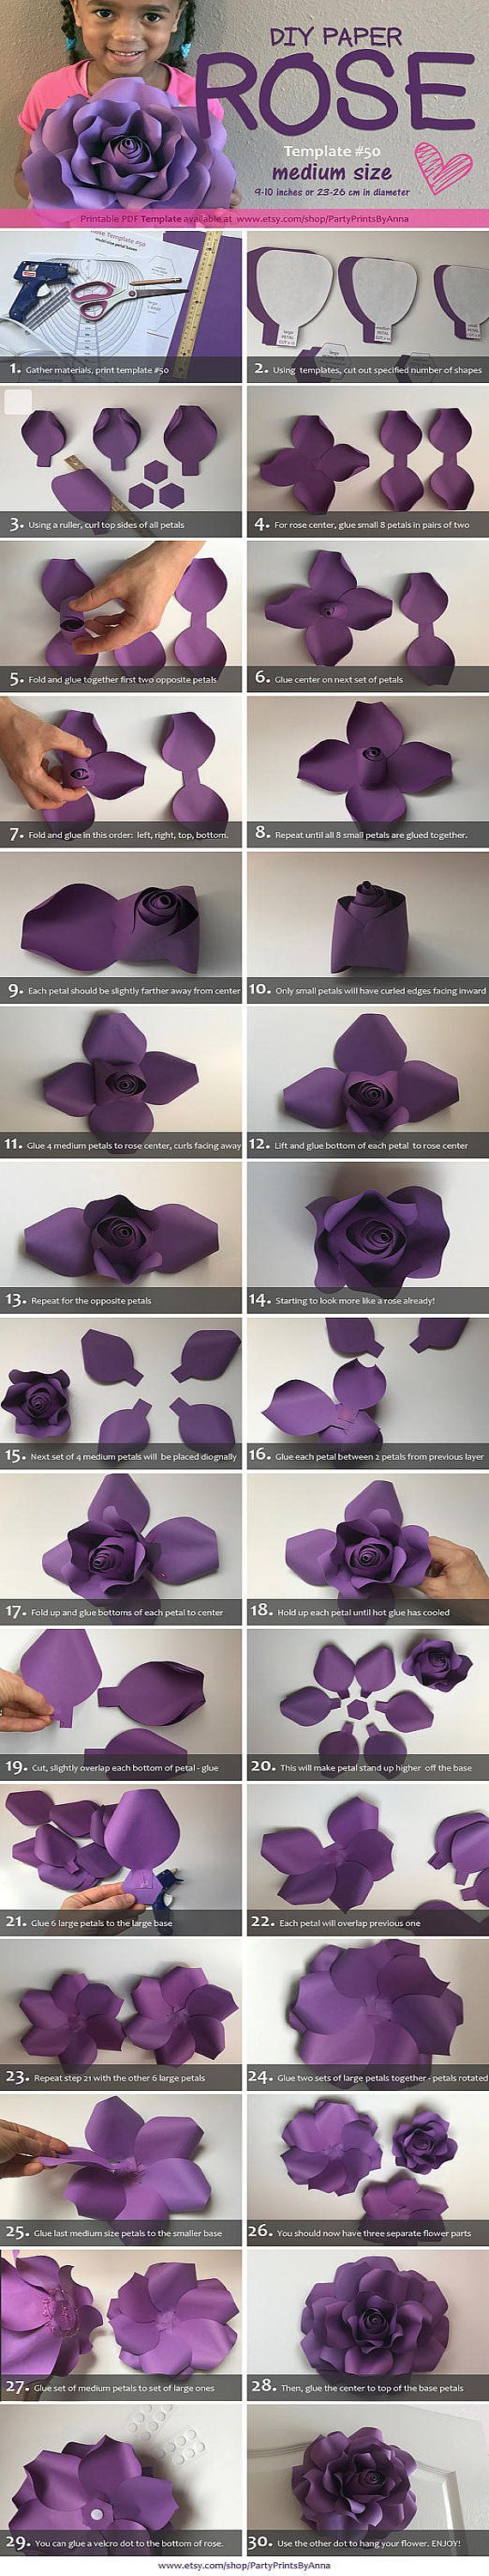 Paper Flower Template Printable Paper Rose Template DIY Paper Rose